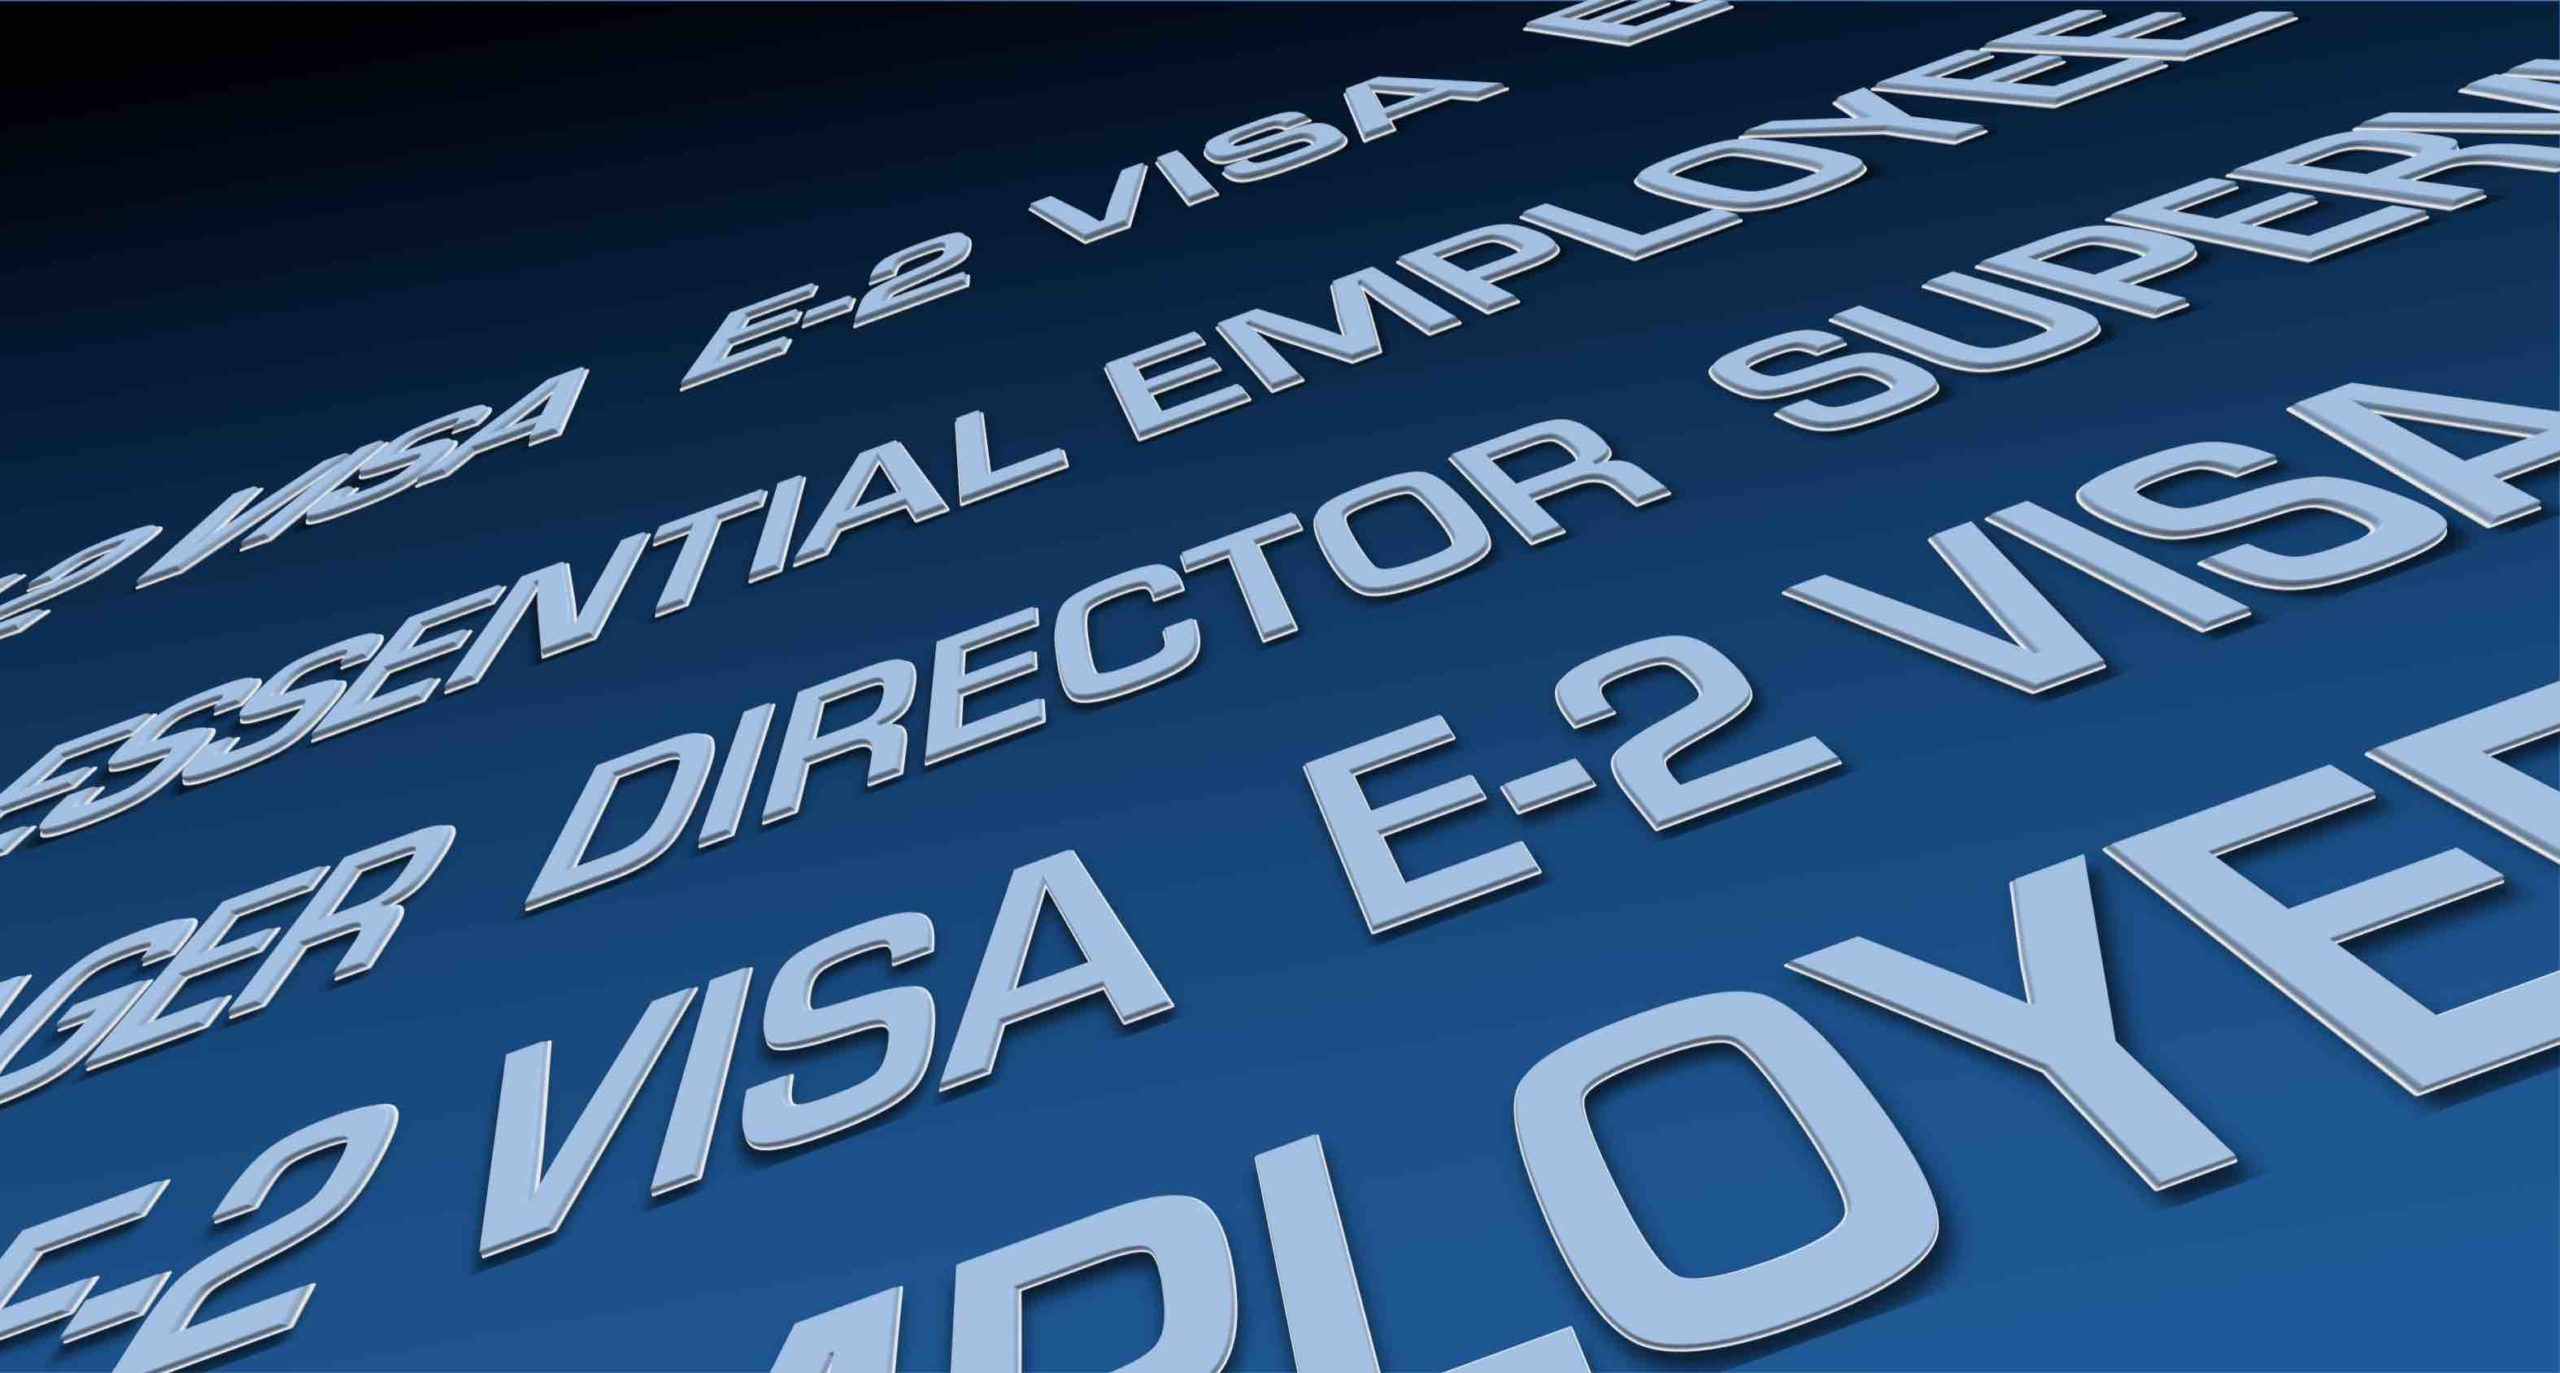 3 Clever Uses of E2 Visas for Employees [Infographic]